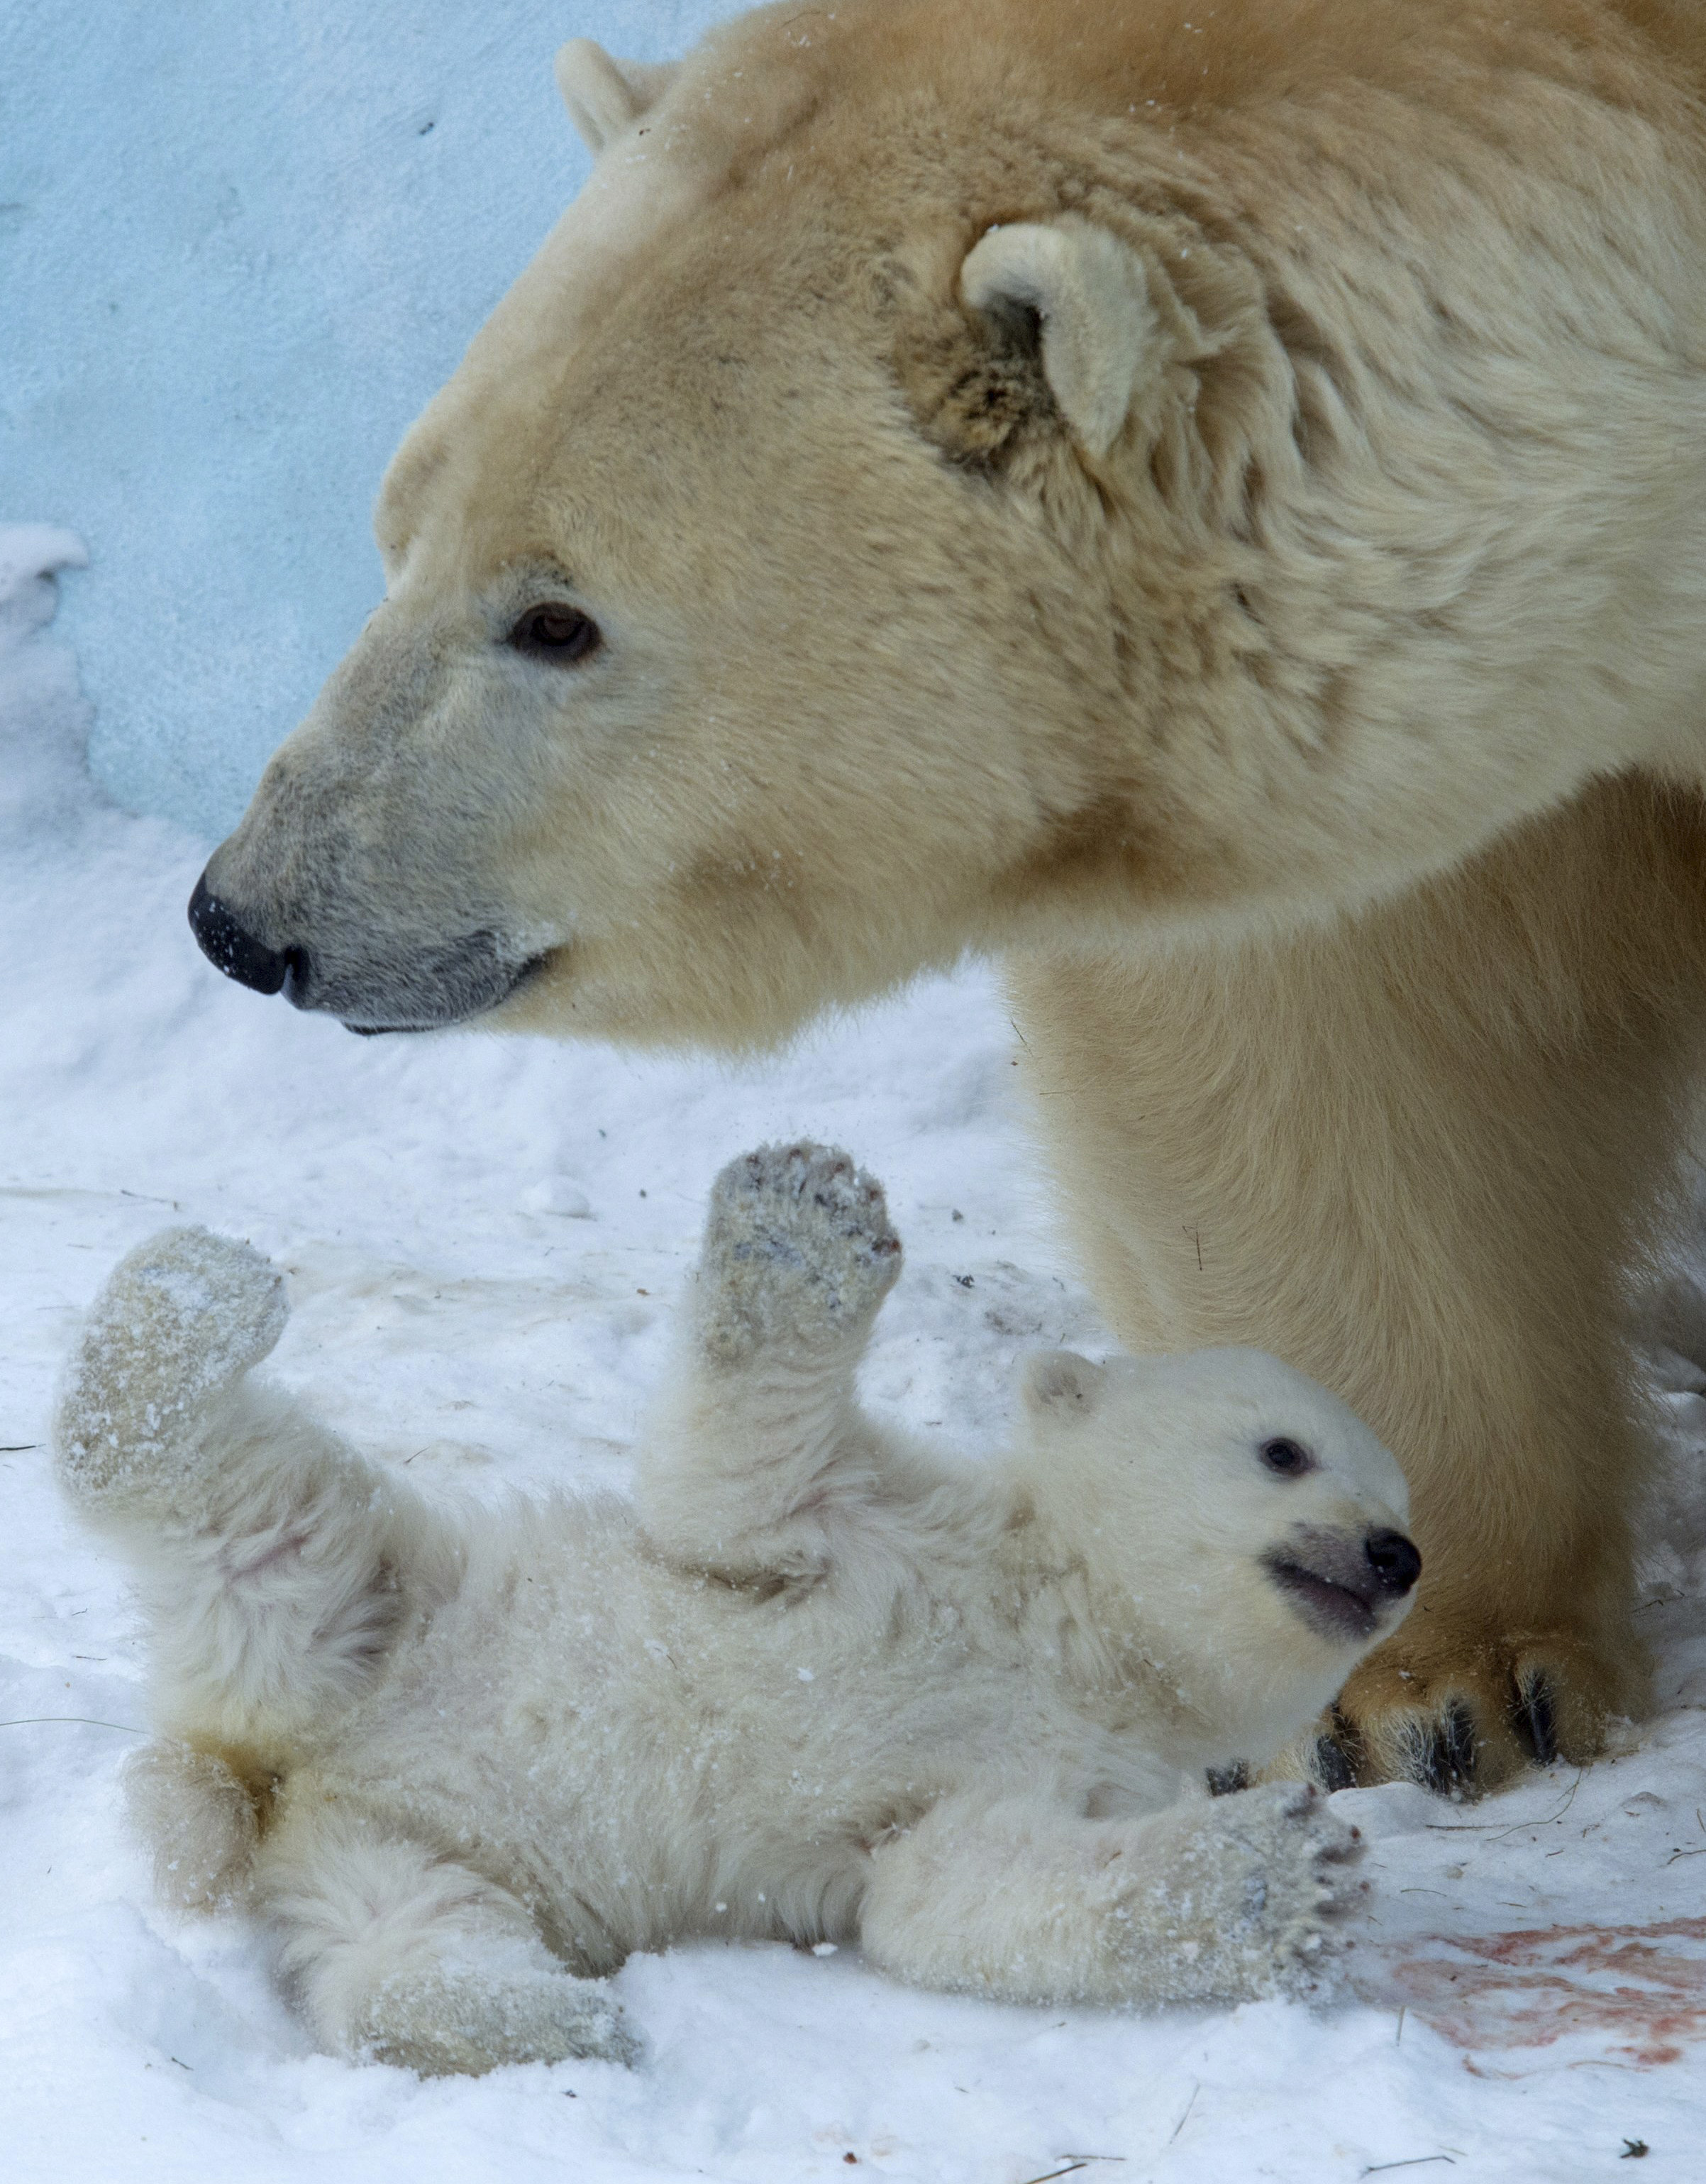 Polar bear Gerda plays with her cub in the Zoo in Novosibirsk, about 2,800 kilometers (1,750 miles) east of Moscow, Russia, Friday, March 7, 2014.